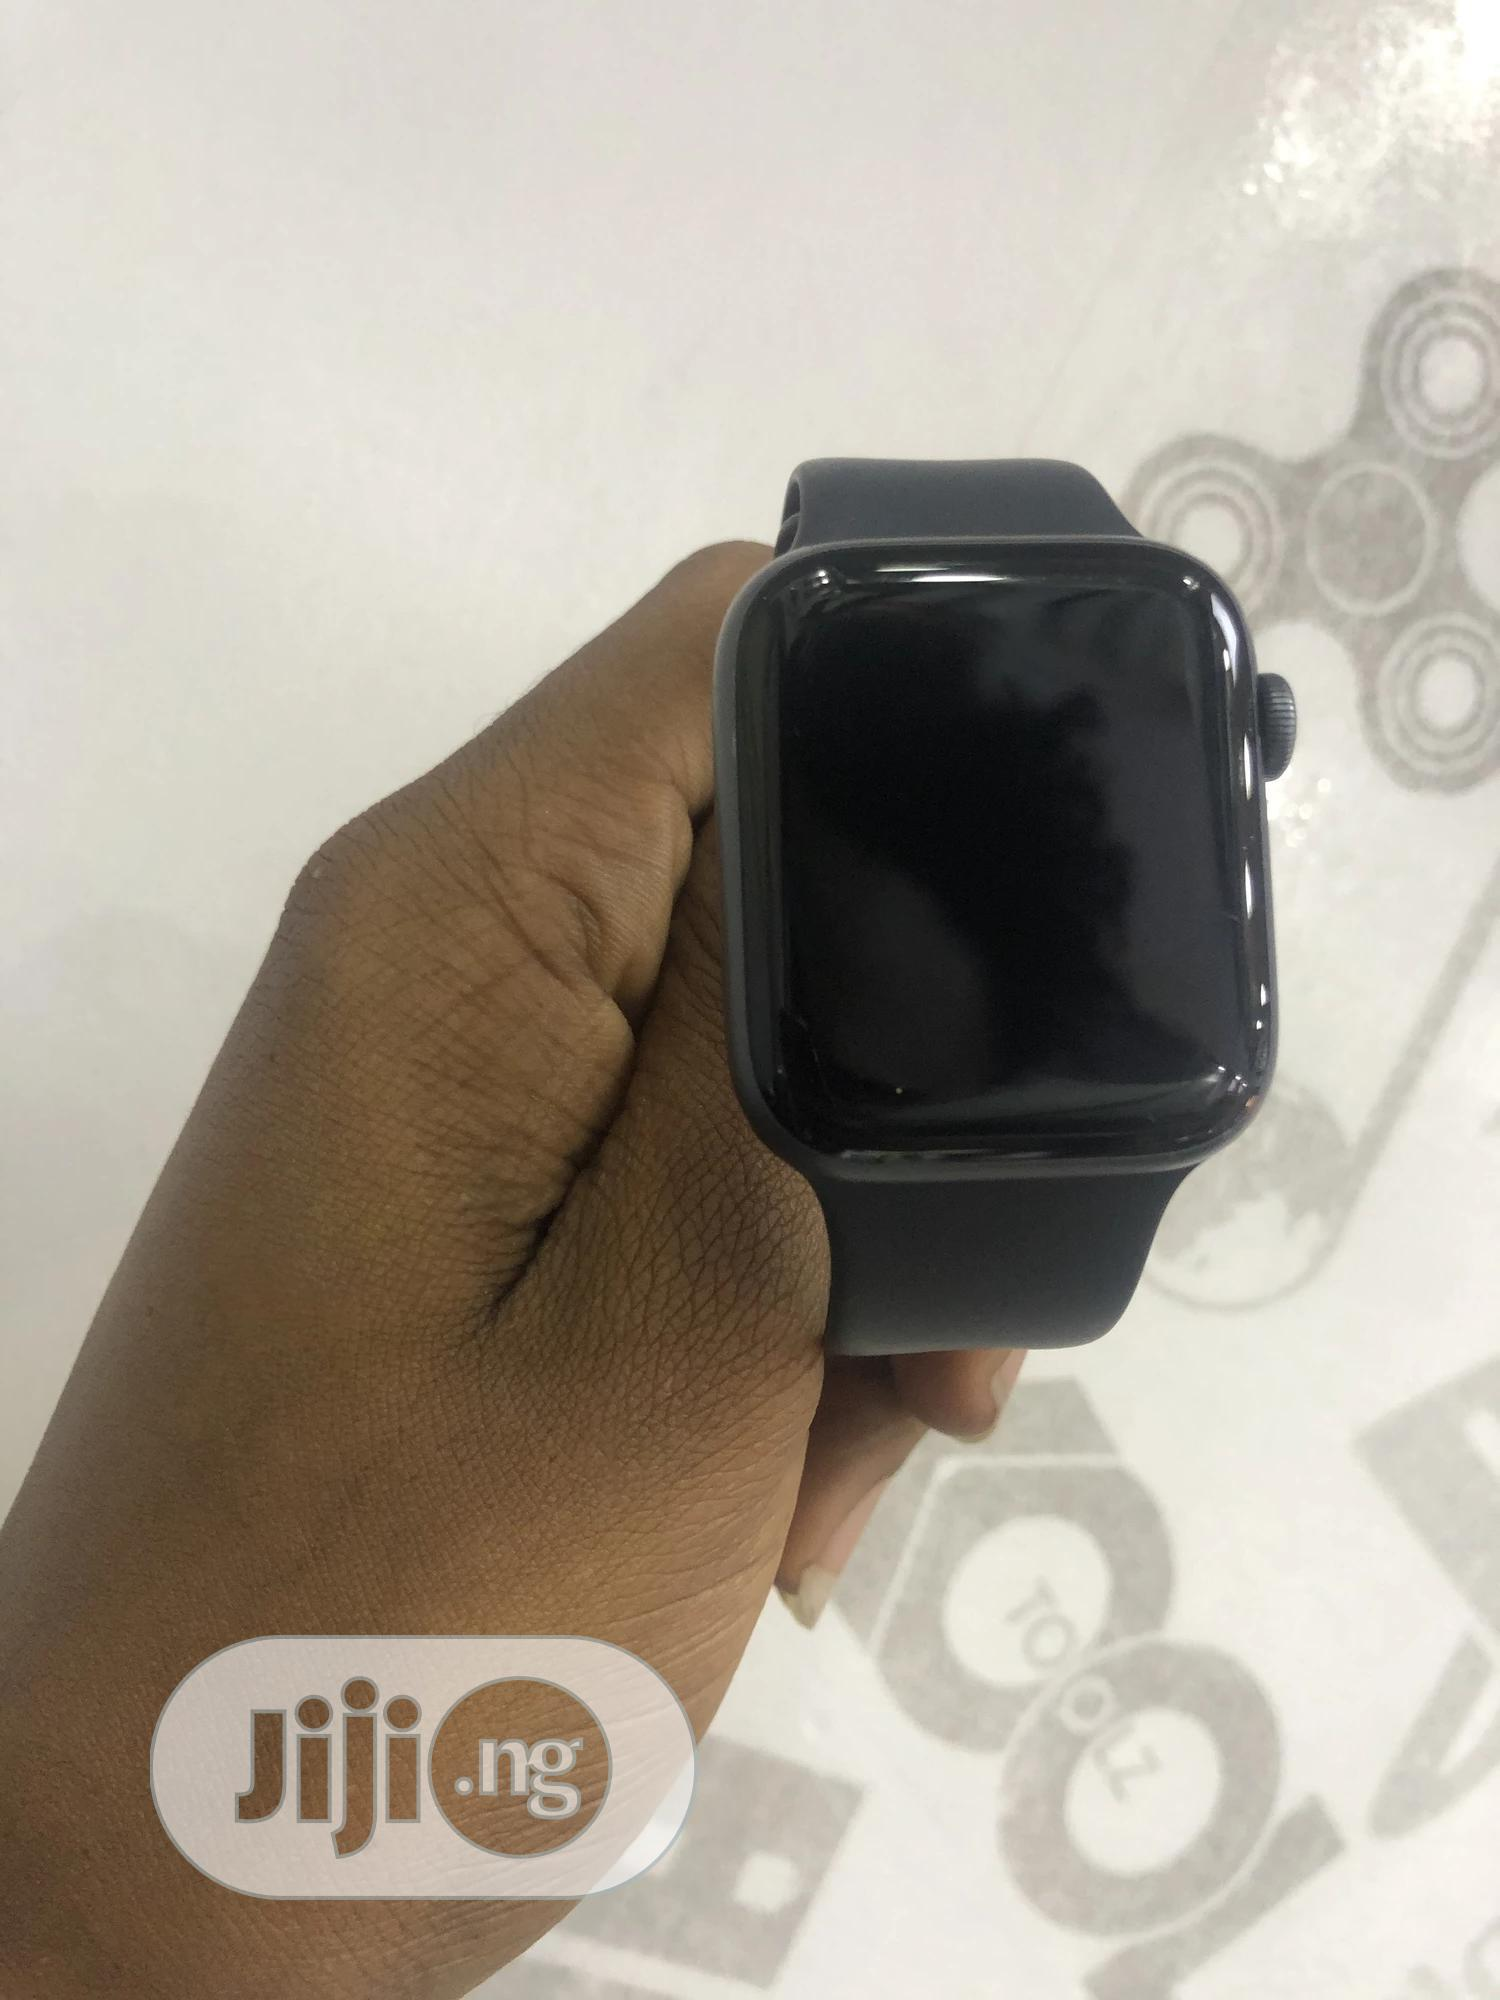 Apple Watch Series 4 44mm, Gps and Celluar.